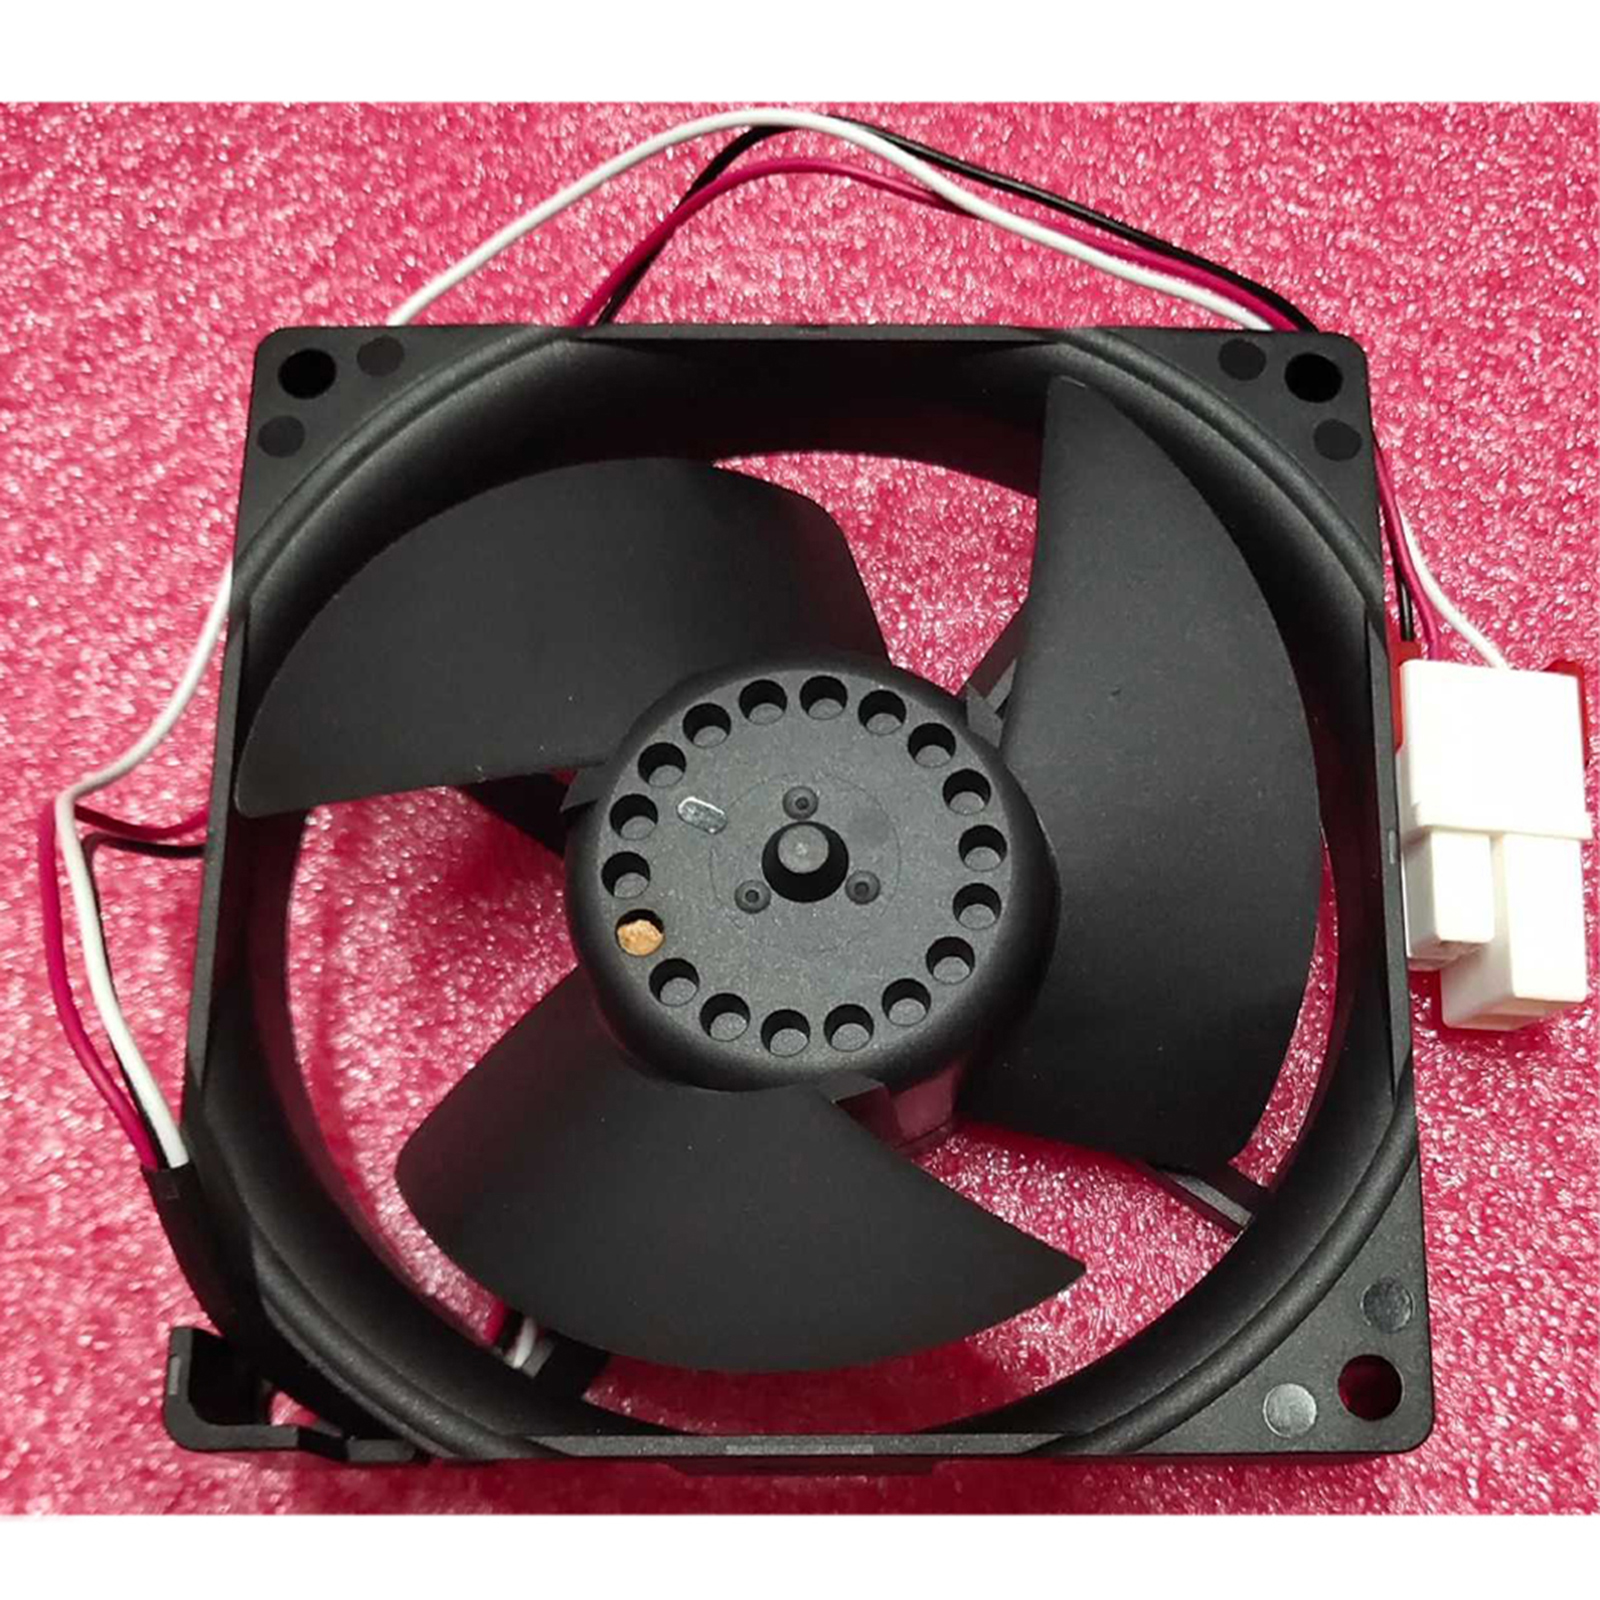 Cooling Fan NMB-MAT 3612JL-04W-S49 12V 0.3A 9.2cm For Samsung Refrigerator Accessories Replacement Refrigerator Cooling Fan